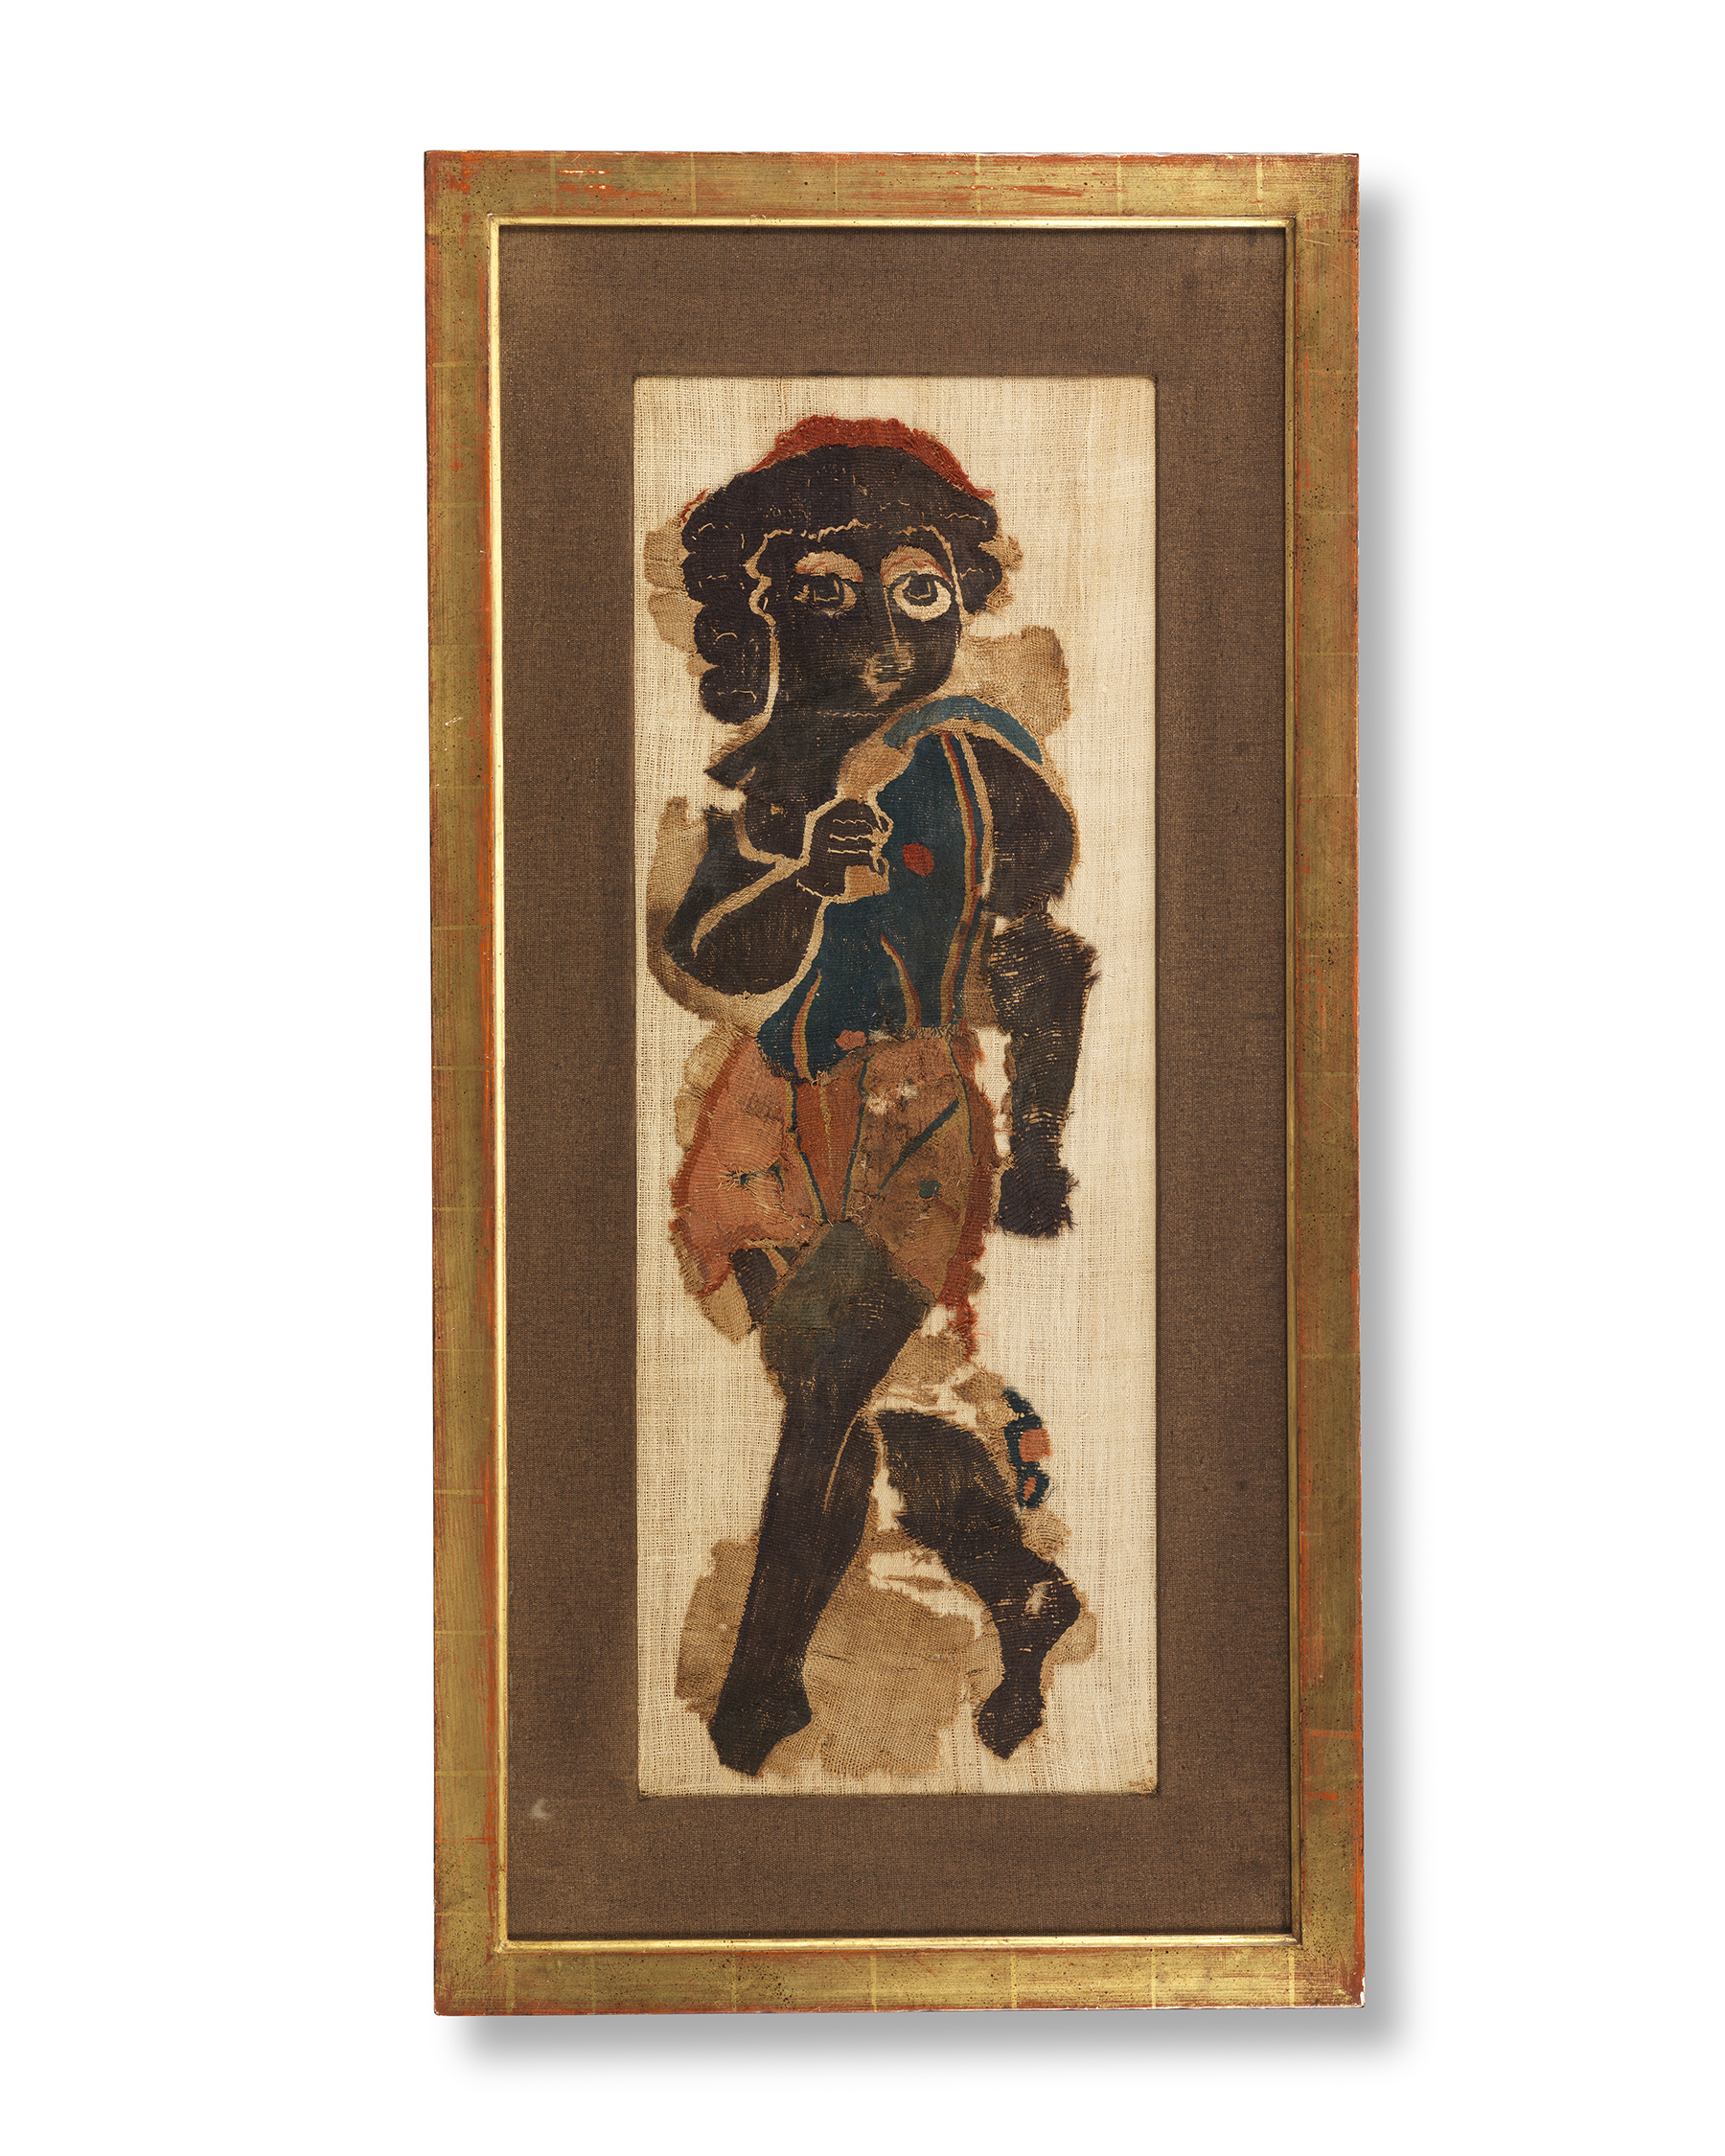 Coptic Textile of a Bacchic Dancer